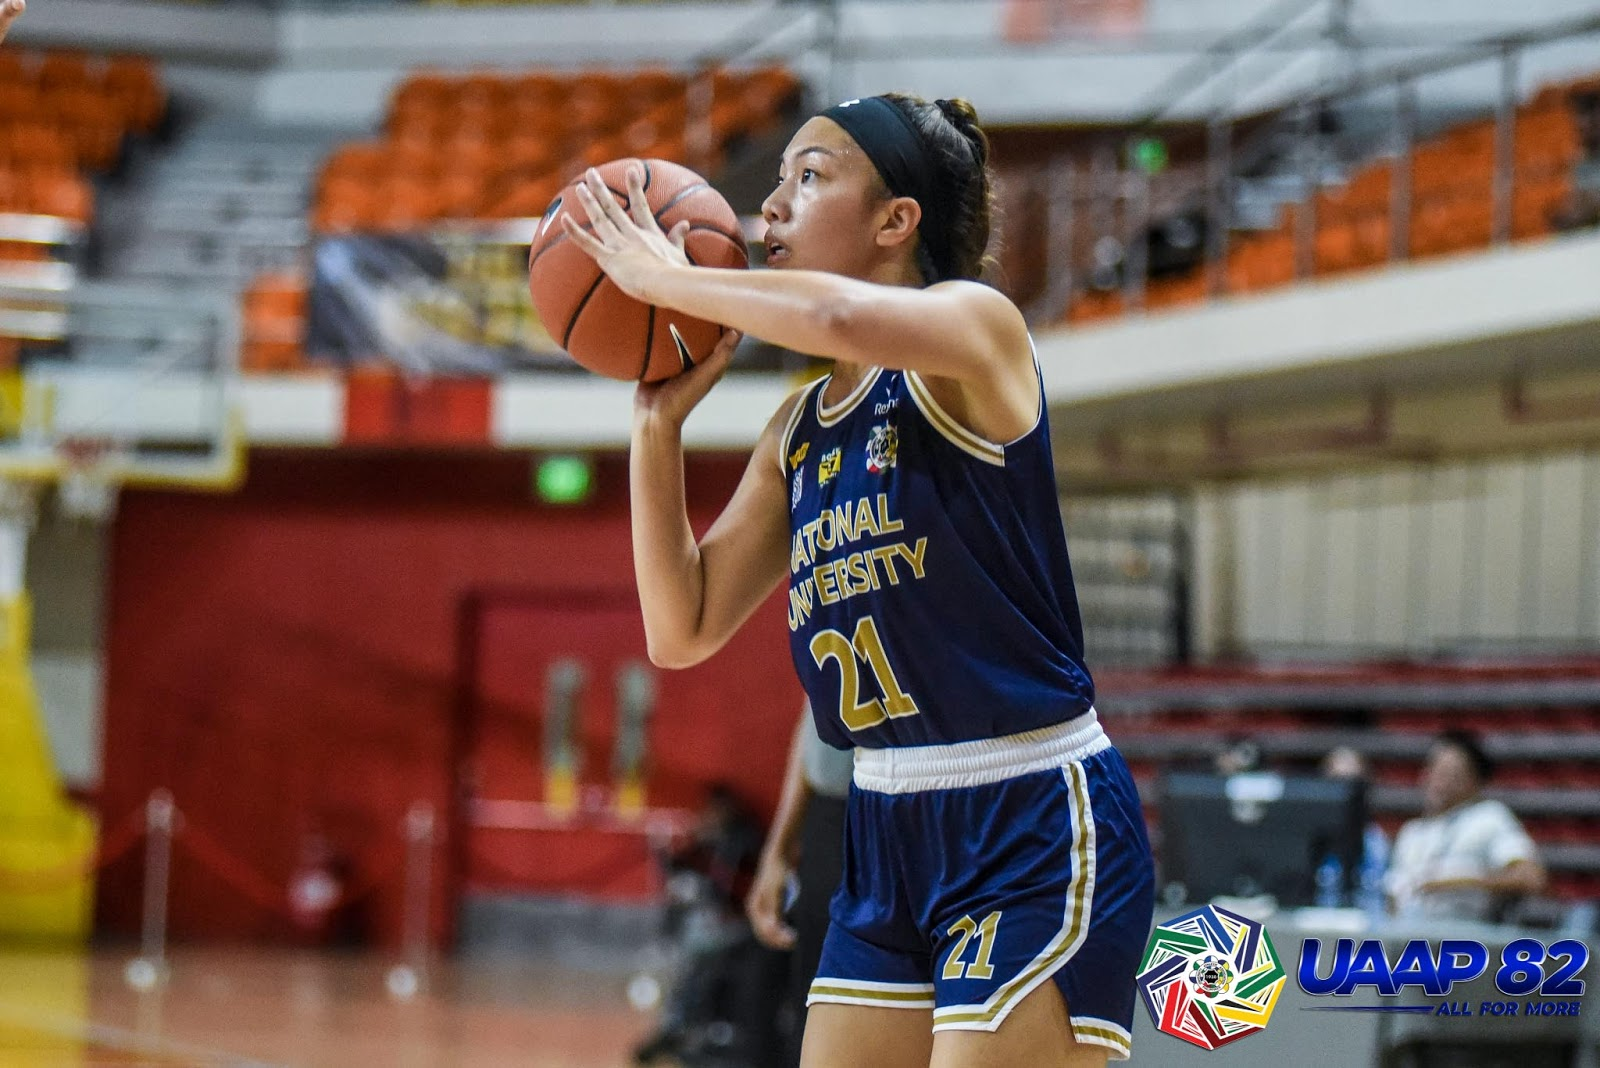 The Injury That Shaped Camille Clarin's Basketball Career